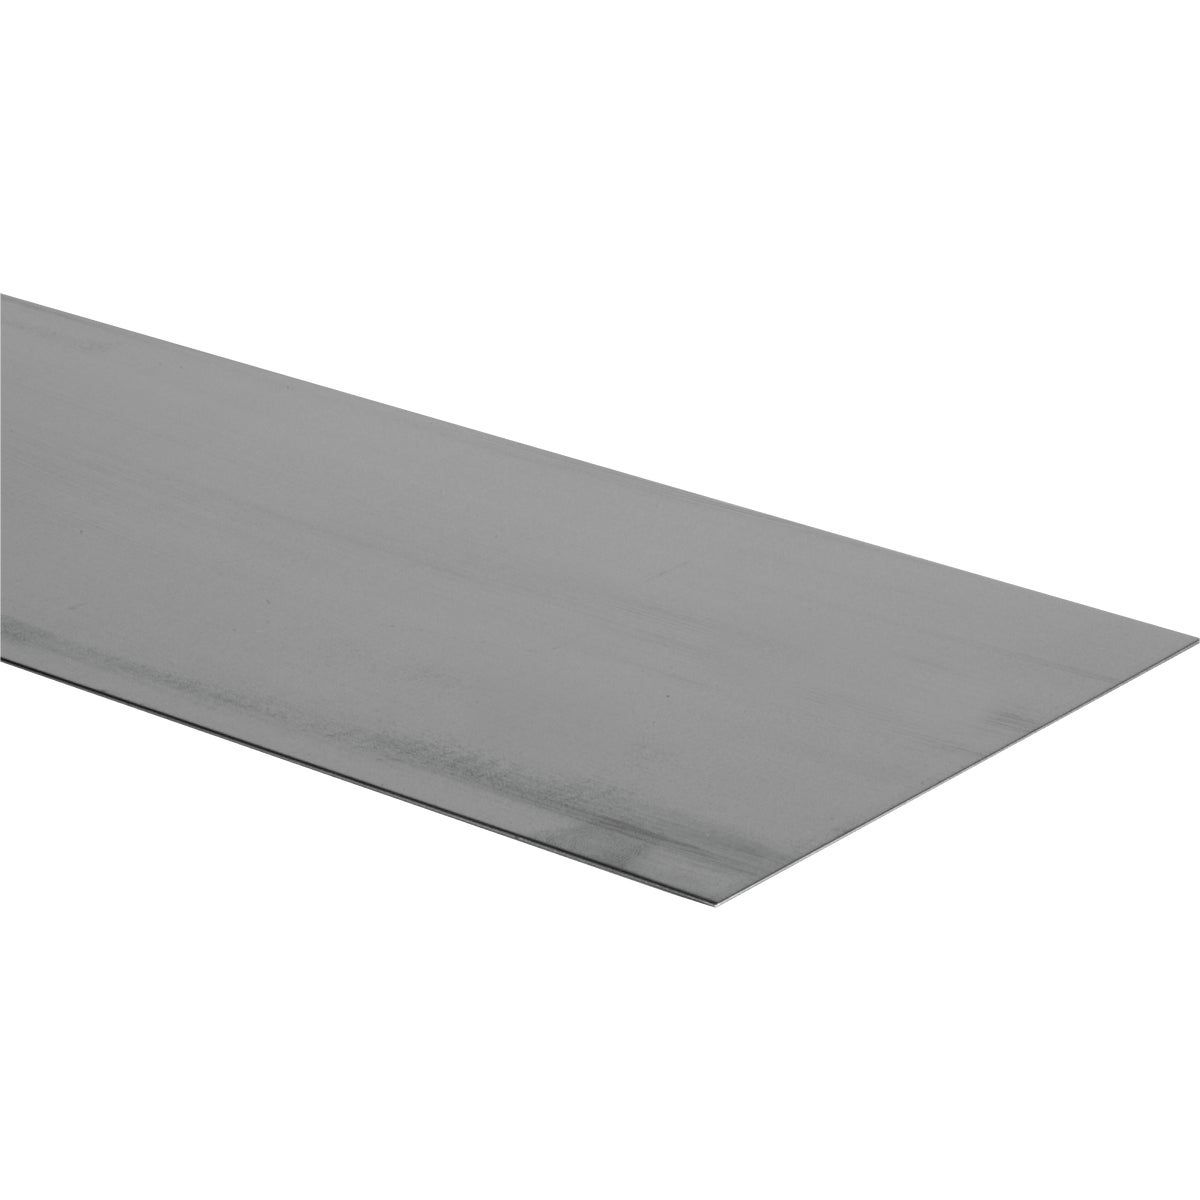 12X24 16GA STEEL SHEET - N215756 by National Mfg Co